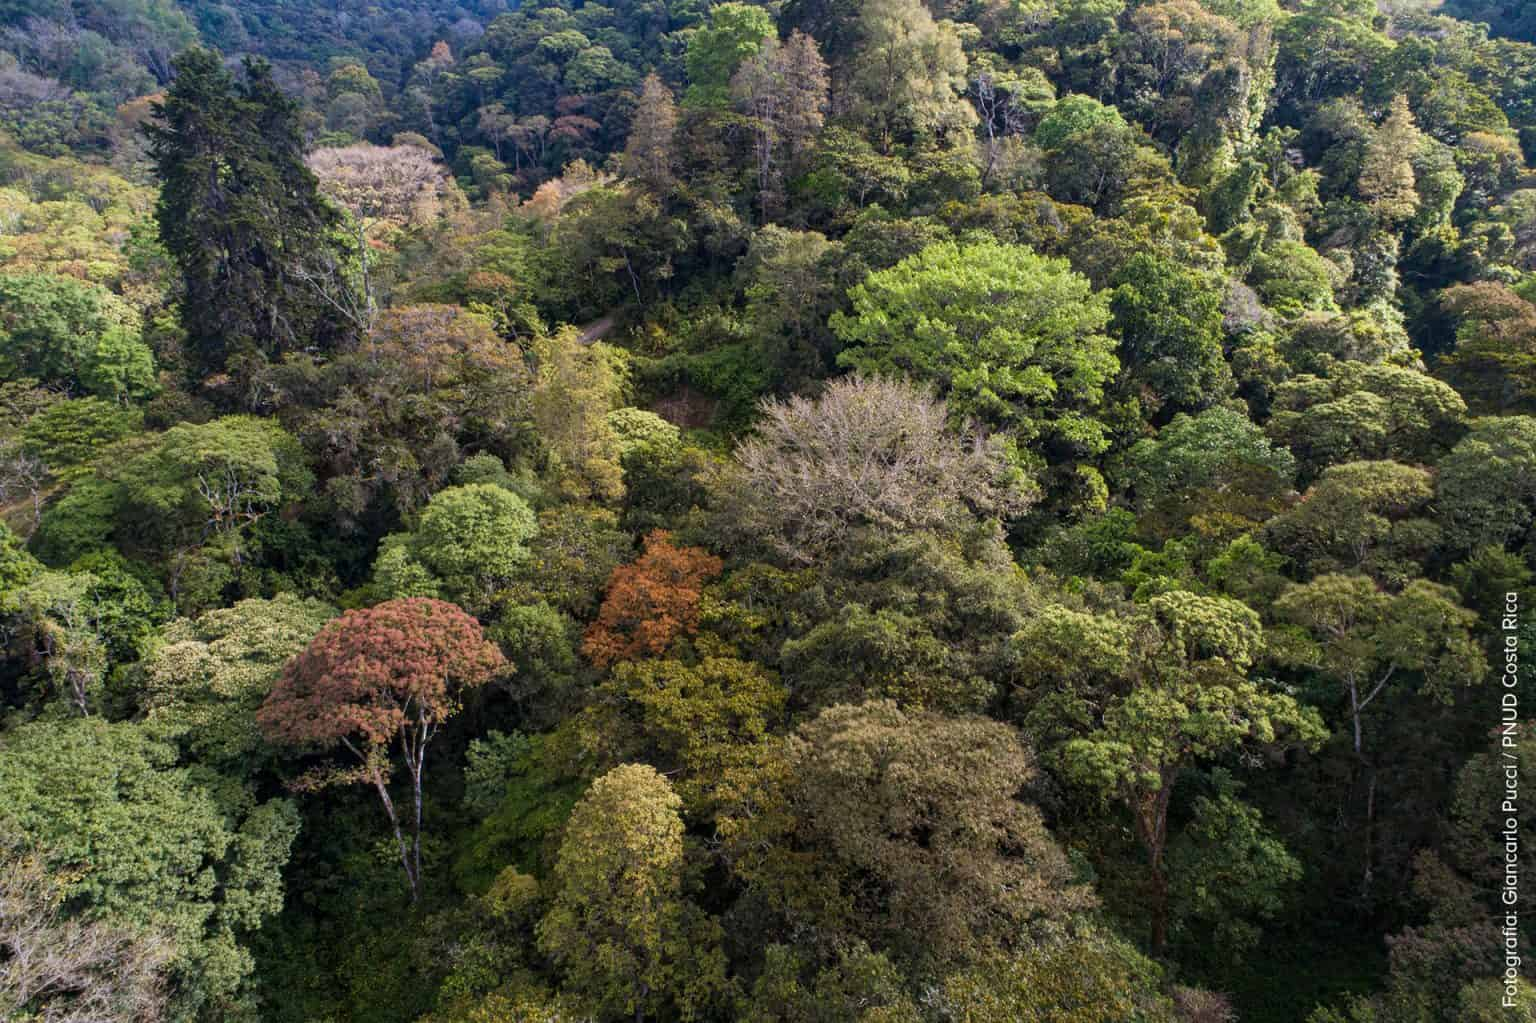 A forest in Costa Rica. Photo for illustrative purposes.